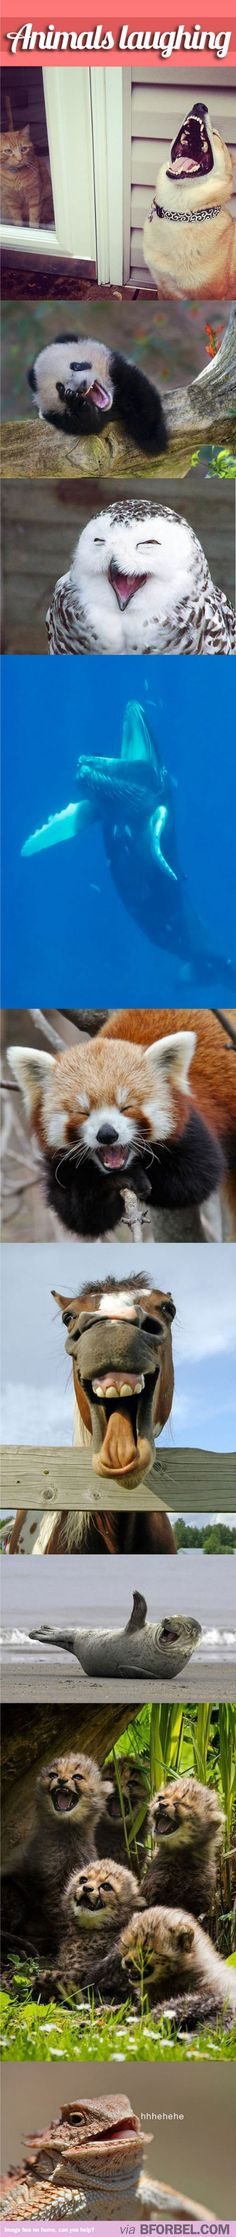 Animals laughing. So much joy in this picture.